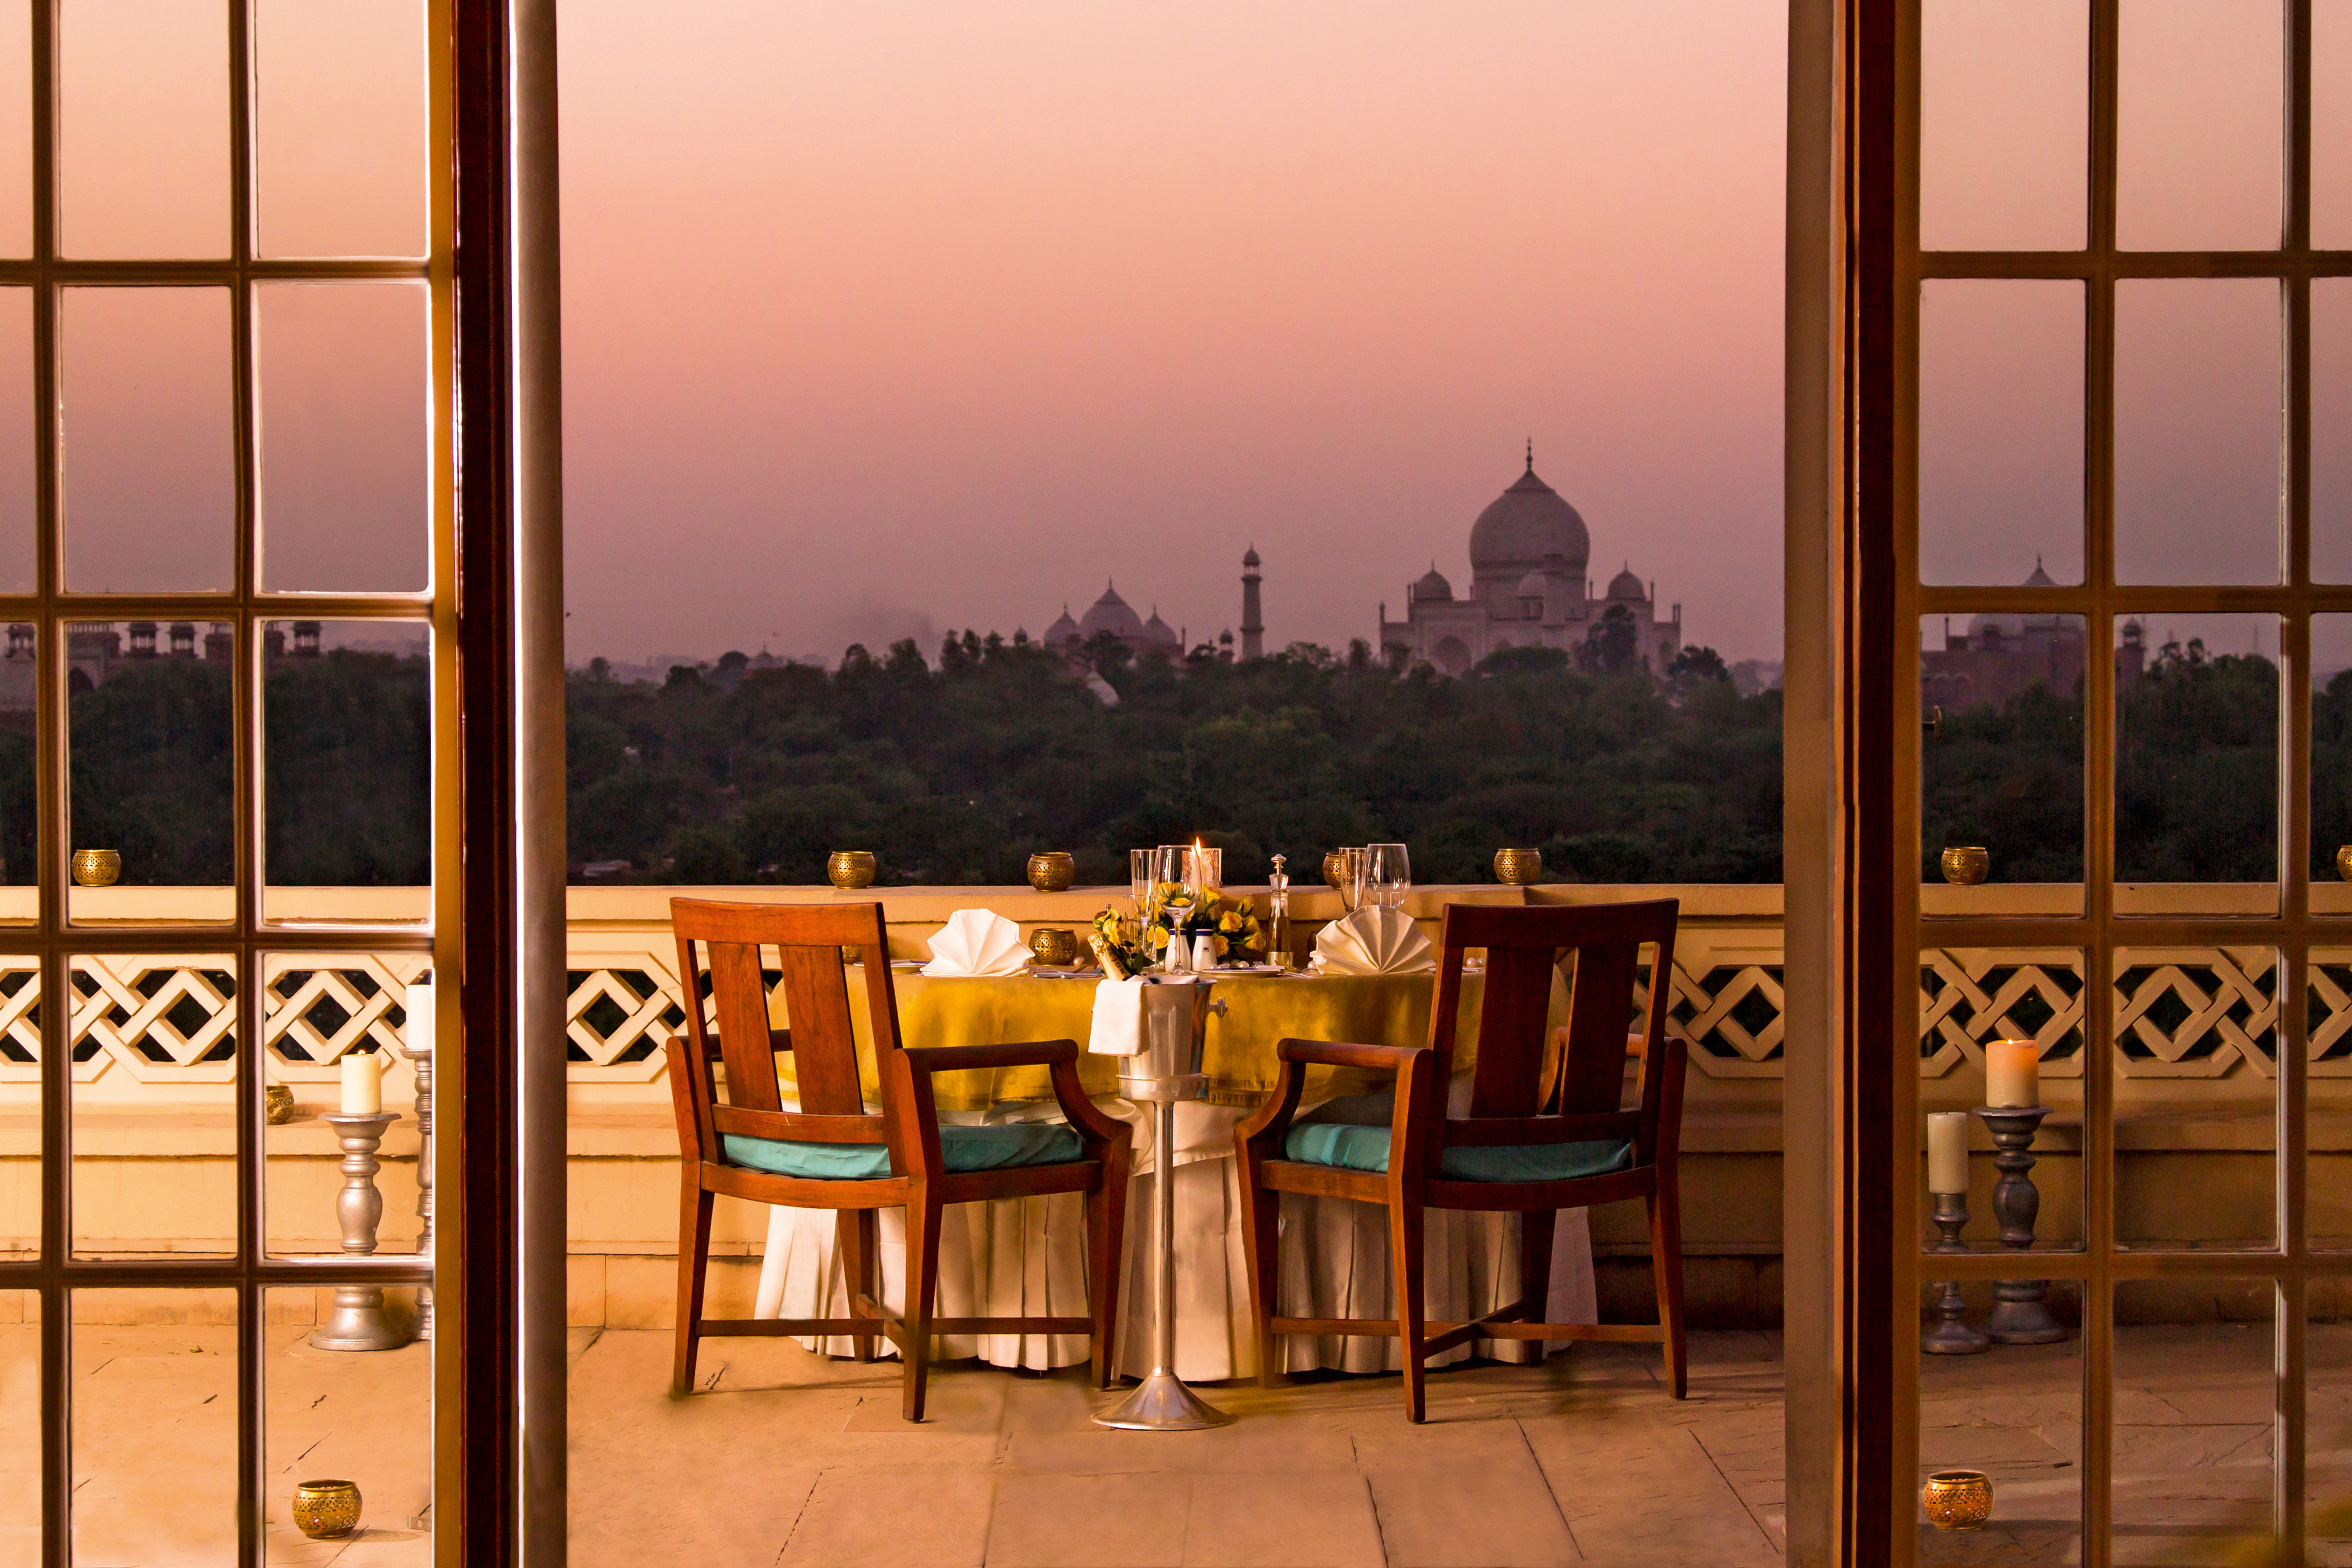 Balcony view at hotel The Oberoi Amarvilas in Agra, North India